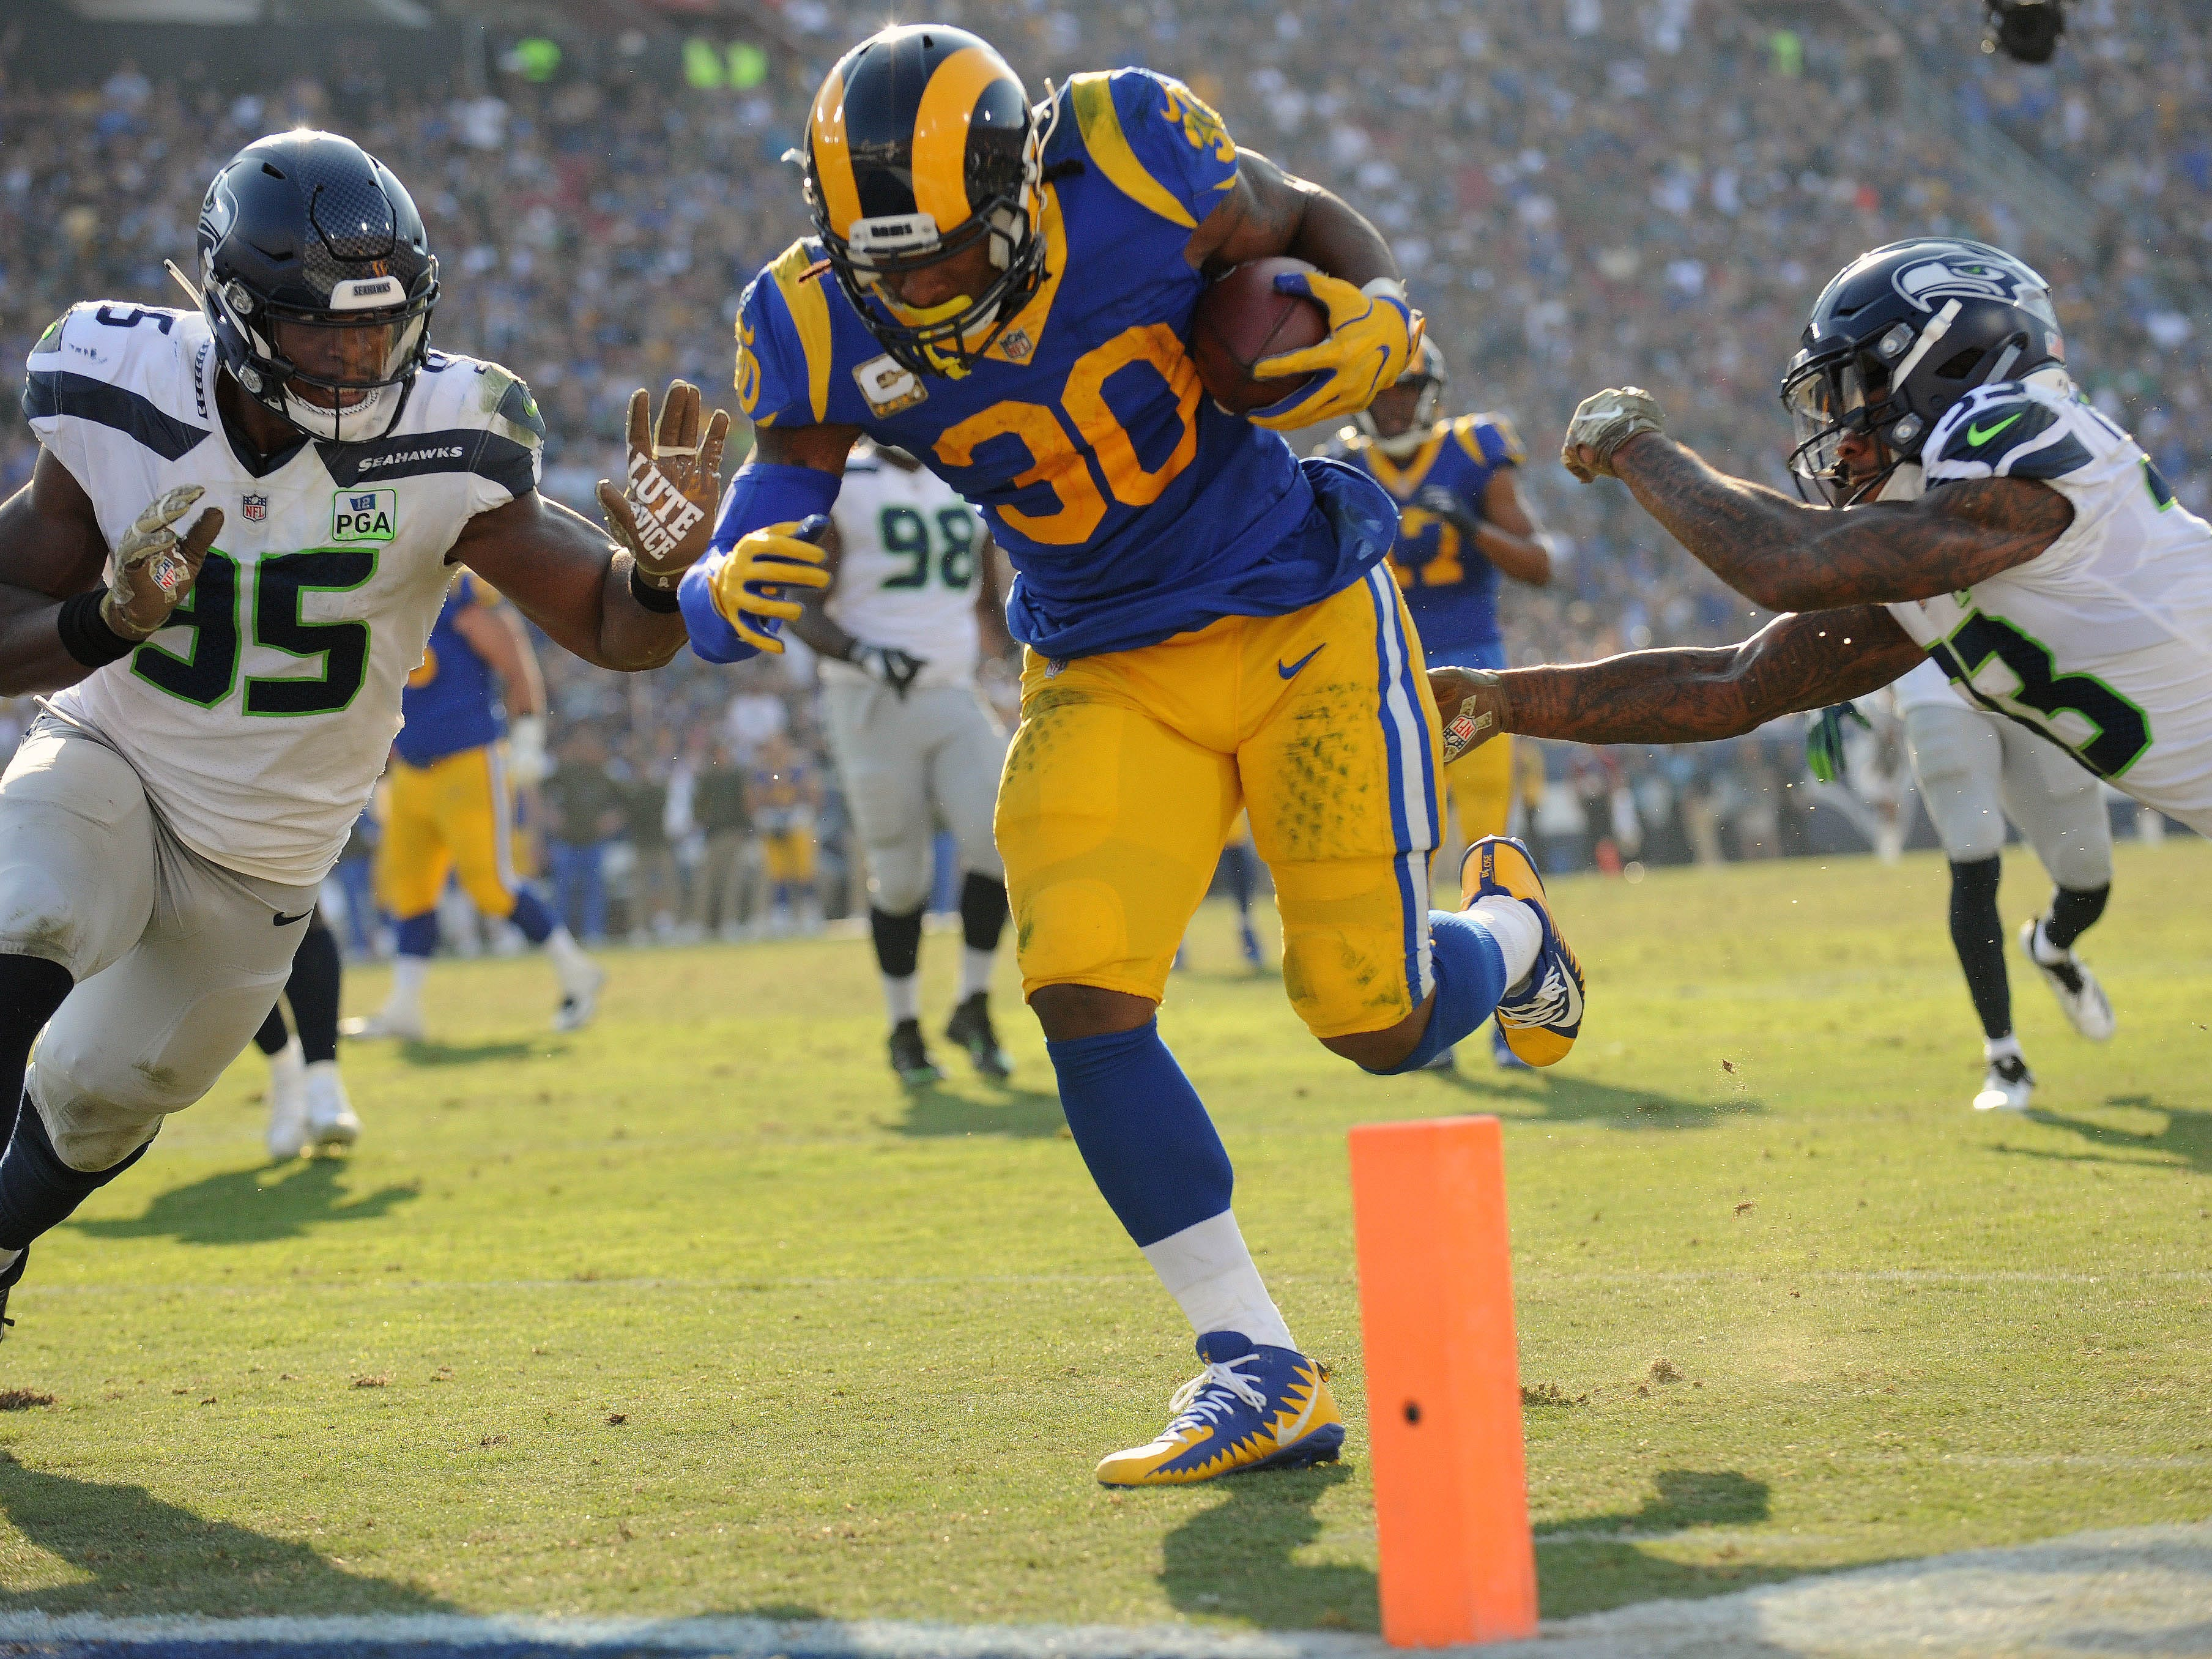 Week 10: Los Angeles Rams running back Todd Gurley runs for a touchdown against the Seattle Seahawks during the first half at the Los Angeles Memorial Coliseum. The Rams won the game, 36-31.